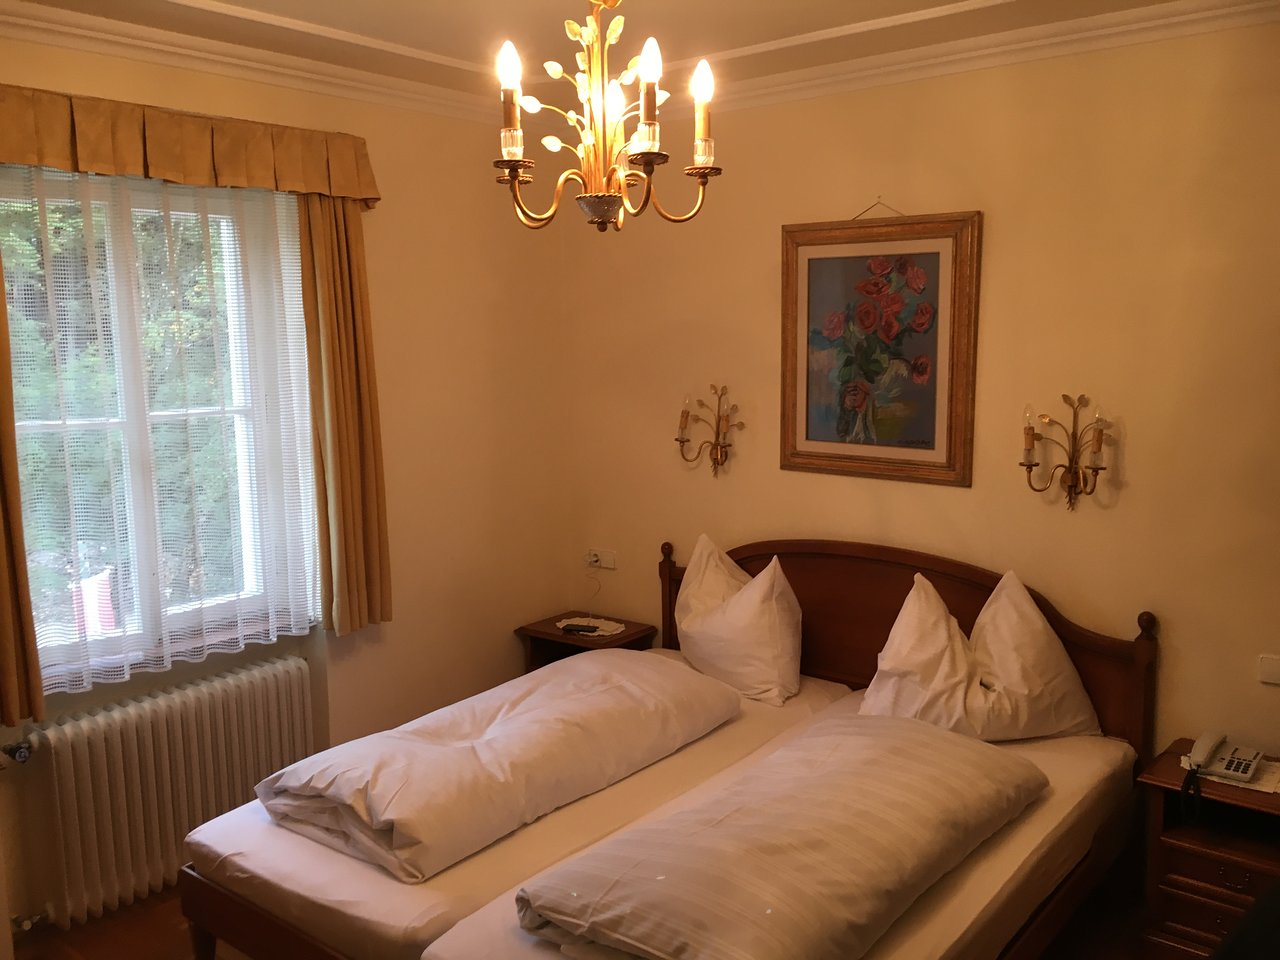 Restaurant Esszimmer In Salzburg Hotel Gasthof Maria Plain Prices Guest House Reviews Bergheim